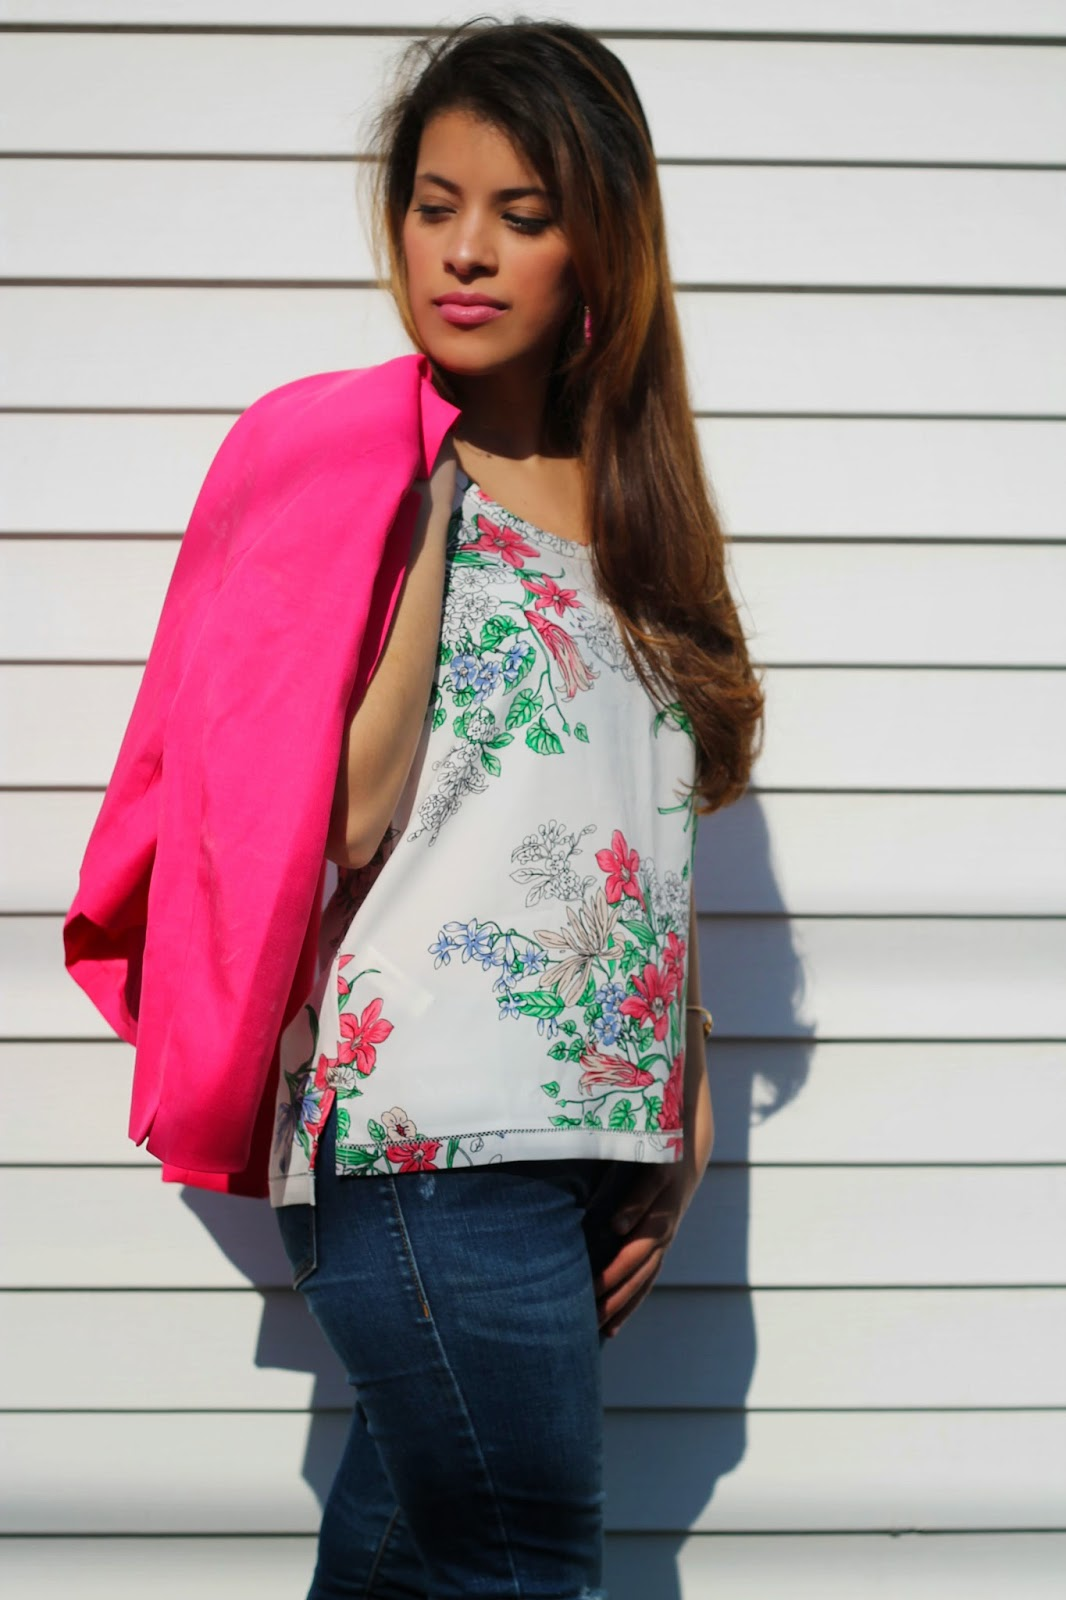 hot pink, blazer, casual, formal, workwear, floral, spring, summer, fashion, forever 21, jcpenney, ann taylor, mules, fun, girl, beautiful, blogger, chic, new, oldnavy, pinterest, spring fashion, weekday, weekend, woman, factory store, skinny jeans, bright, fun, look, outfit, white, brunette, girl, girly,